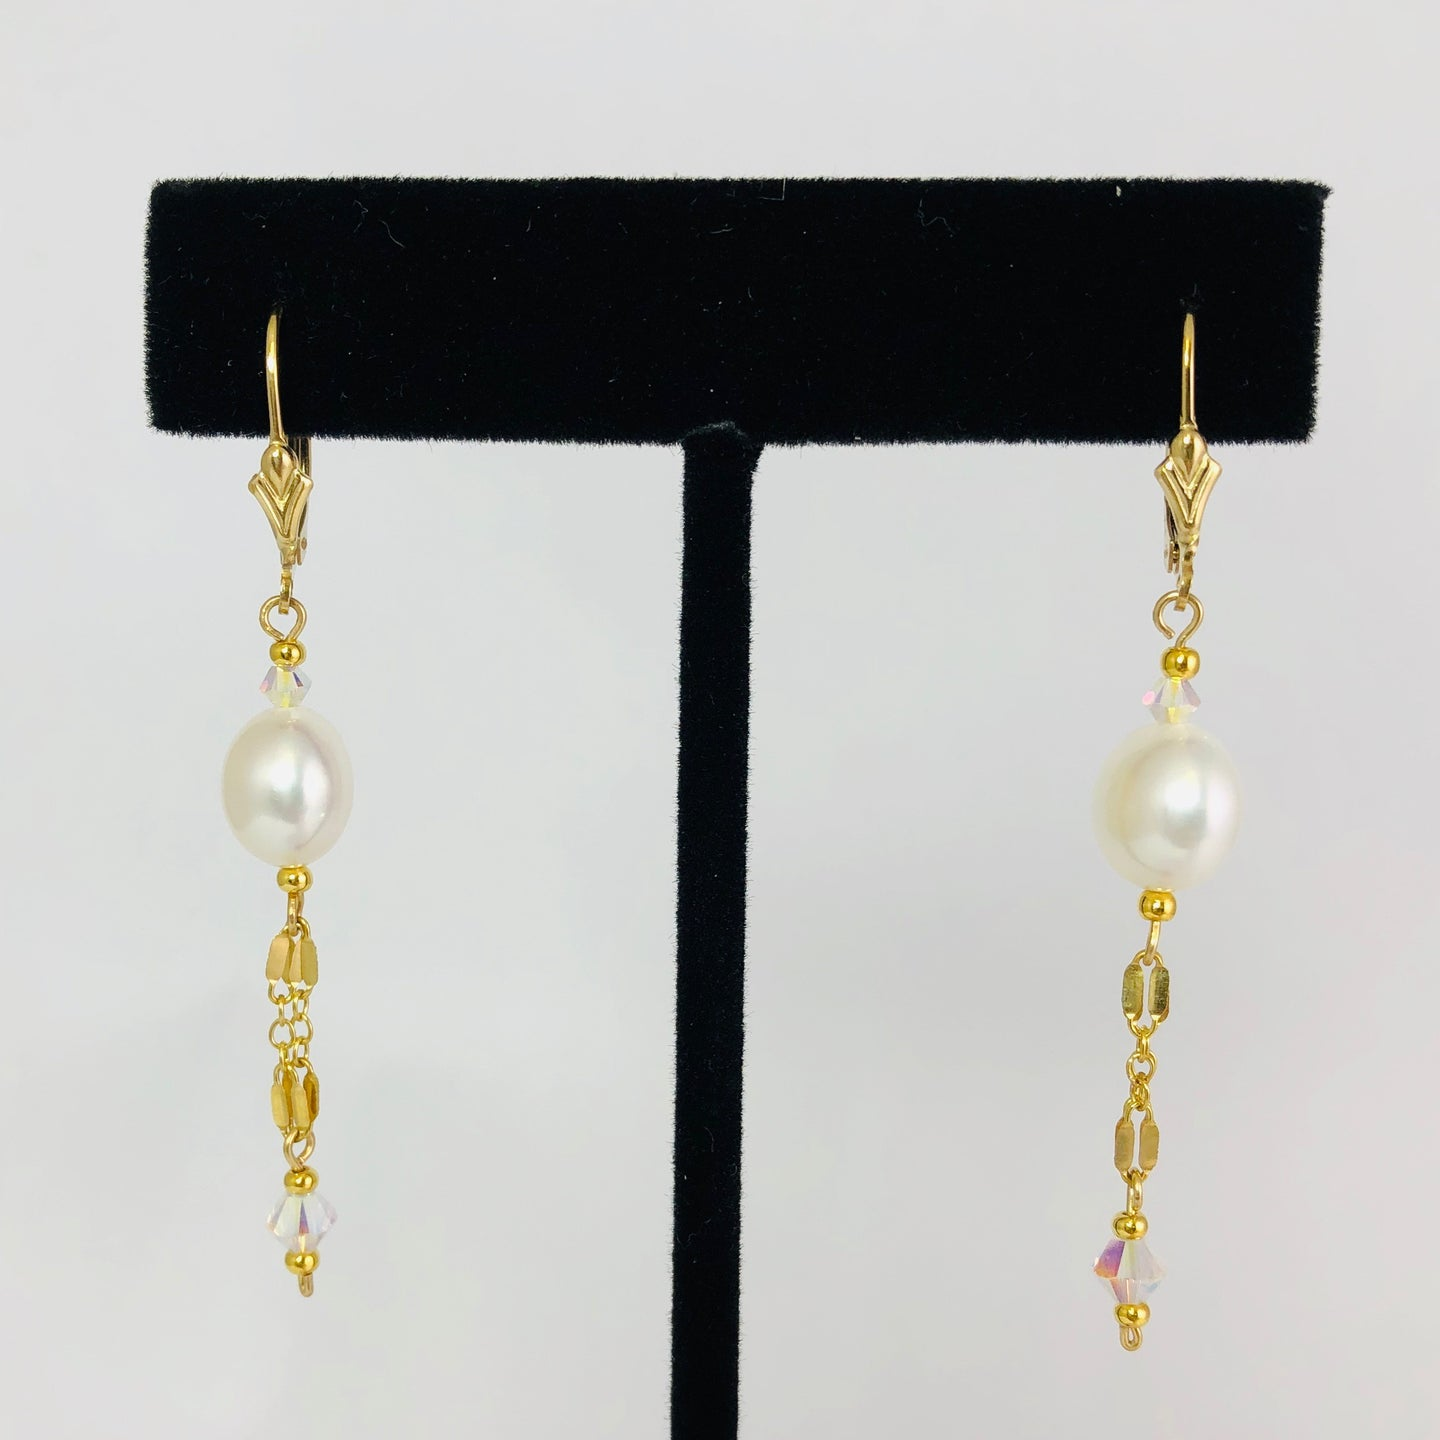 Earrings, EG ivory drip, by Cynthia Bloom